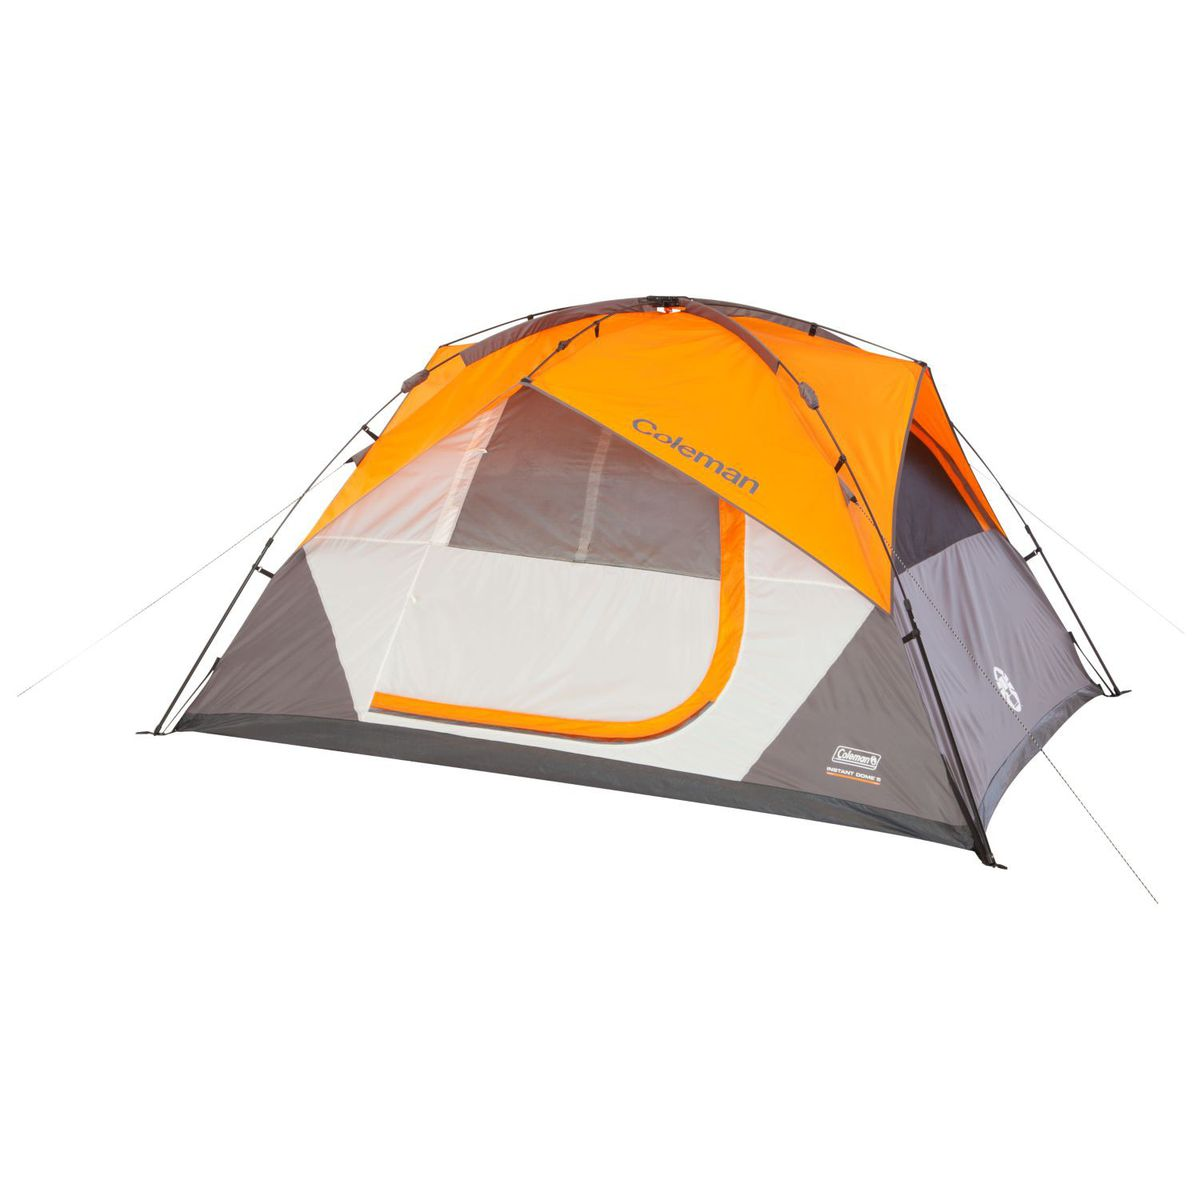 Coleman - Instant Dome 5 Man Tent - Orange. Loading zoom  sc 1 st  Takealot.com & Coleman - Instant Dome 5 Man Tent - Orange | Buy Online in South ...